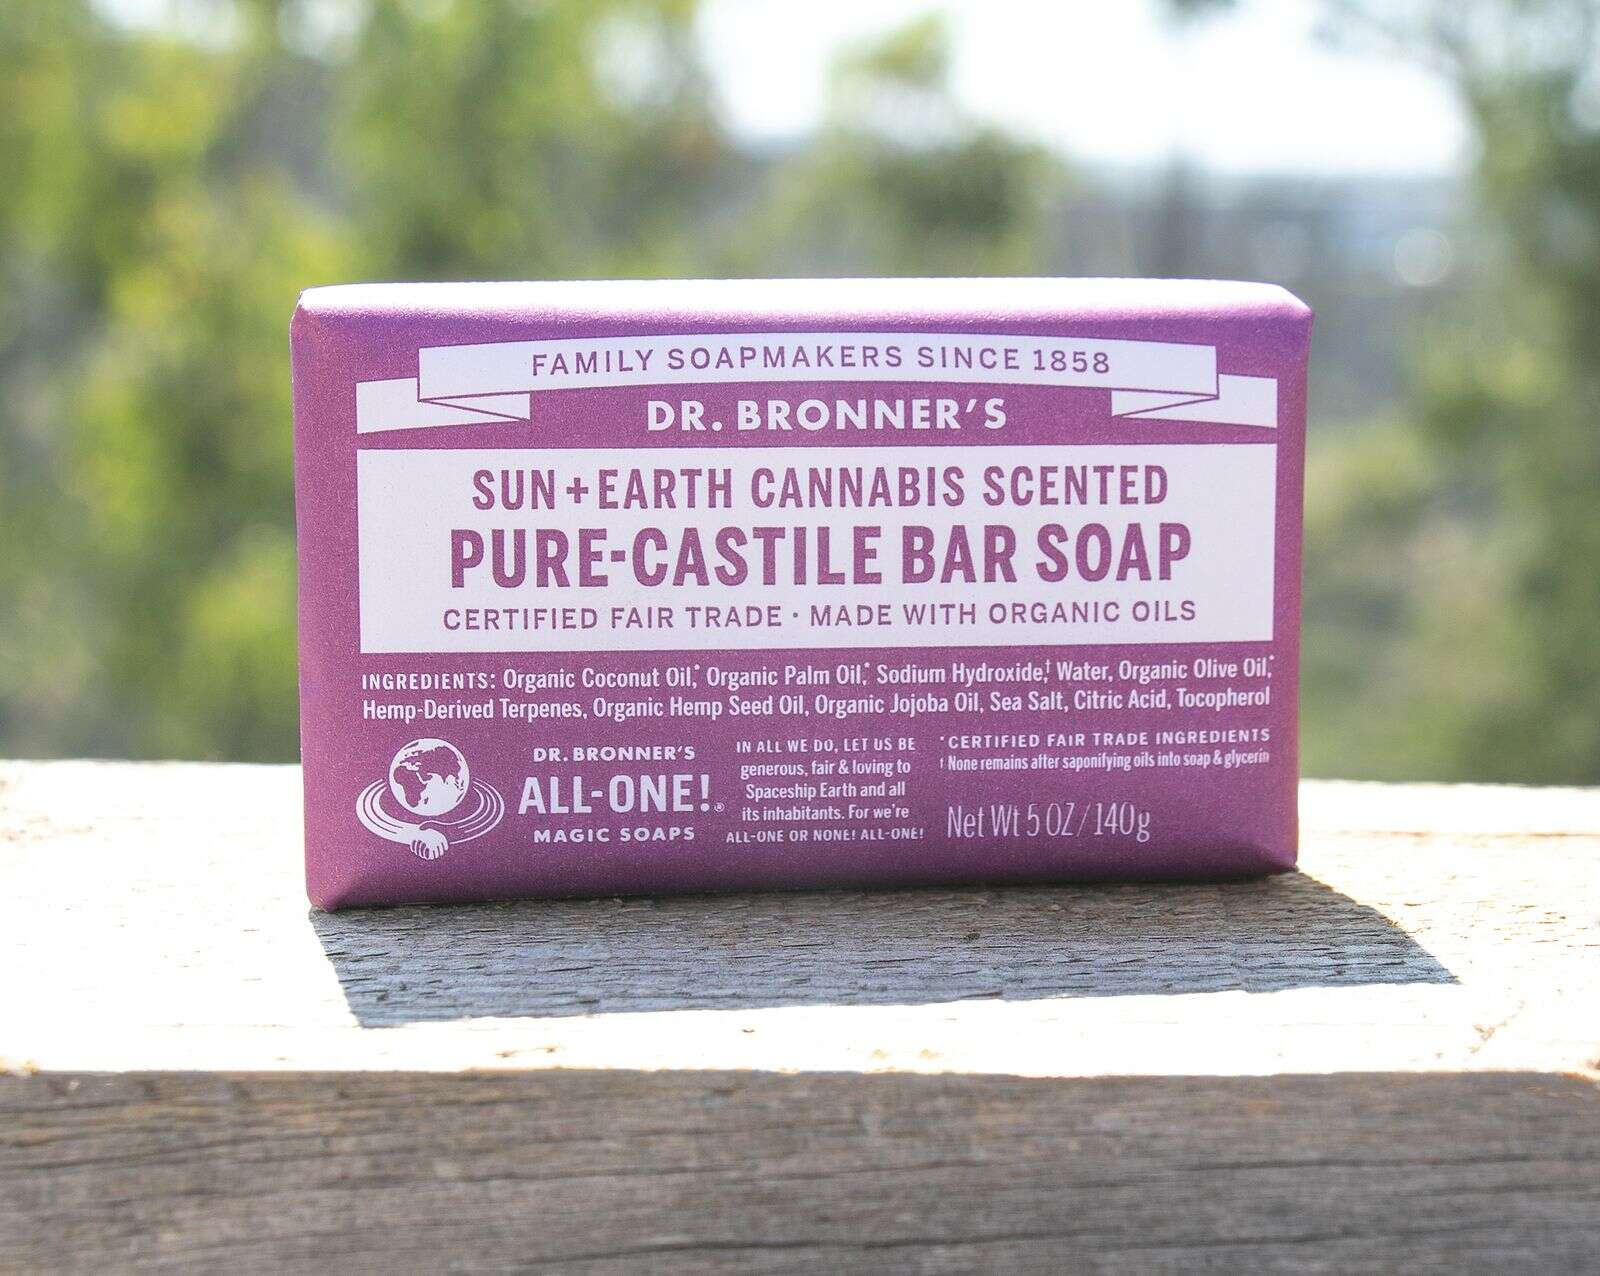 A limited run of Sun+Earth Cannabis Scented Pure-Castile Bar Soaps are only available via a minimum donation of $25, which comes with a Dr. Bronner's Lavender Organic Hand Sanitizer. | Courtesy Dr. Bronner's